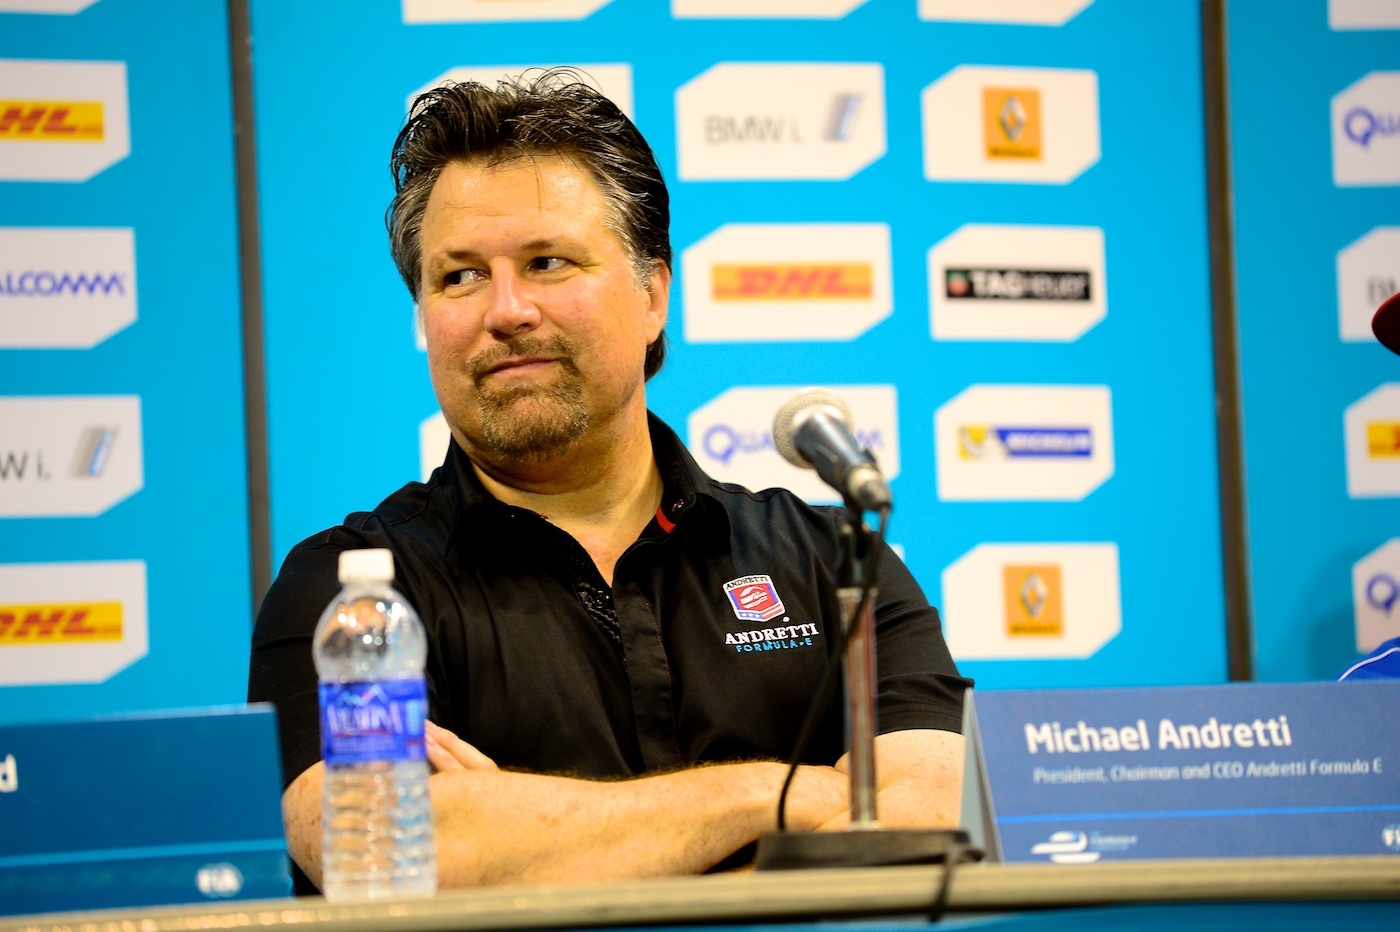 Andretti – competition will drive battery development